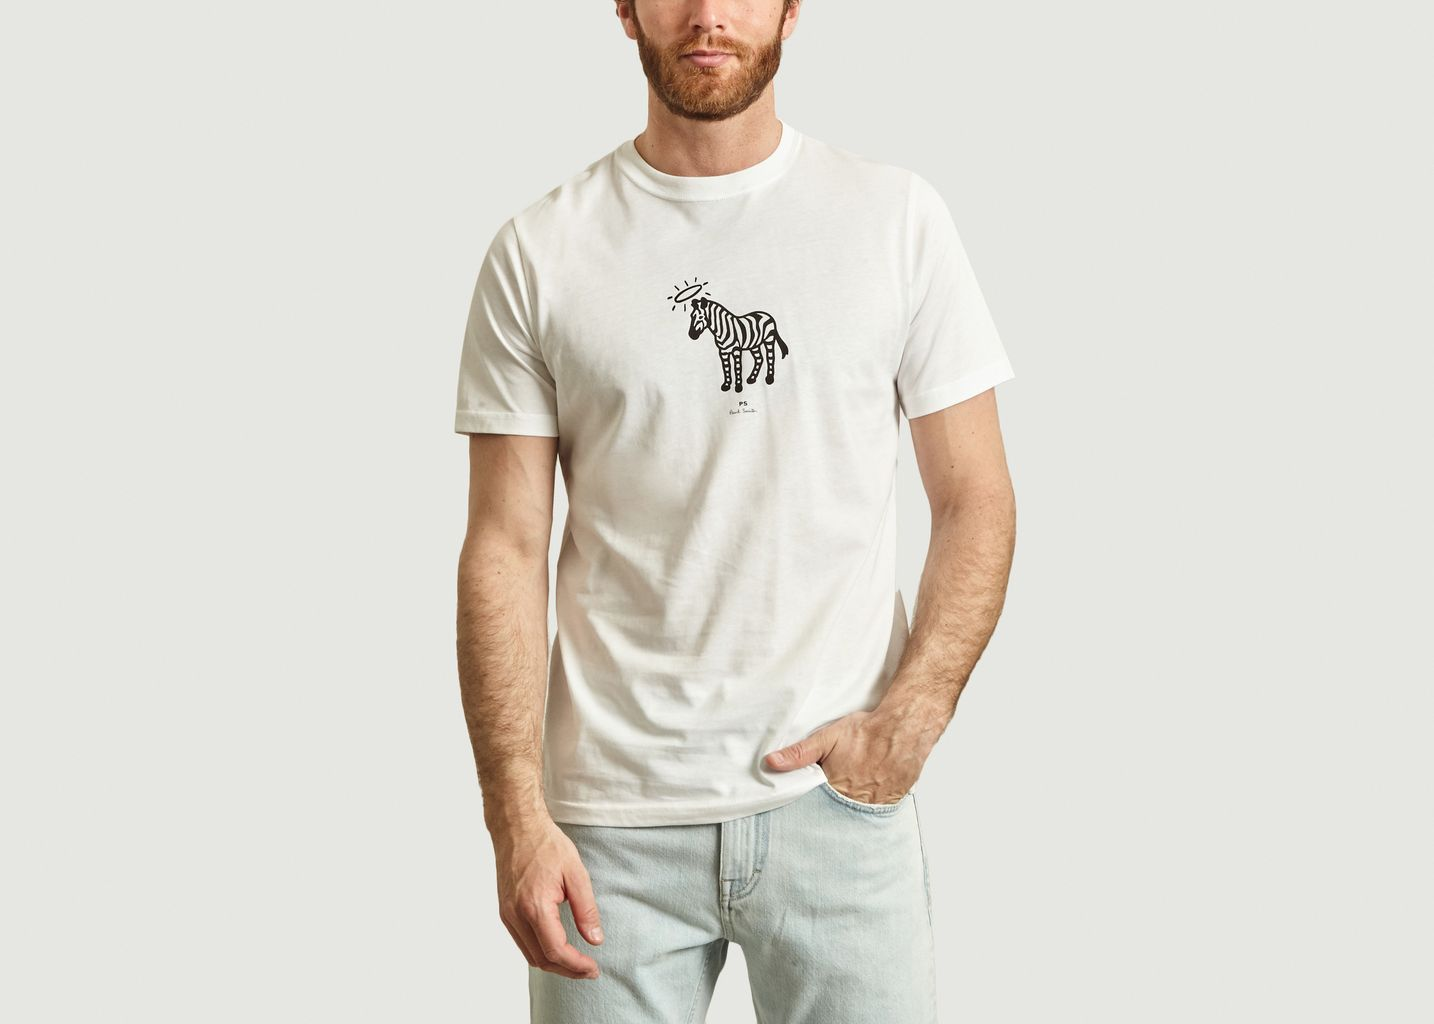 T-Shirt En Coton Imprimé Zèbre Halo - PS by PAUL SMITH